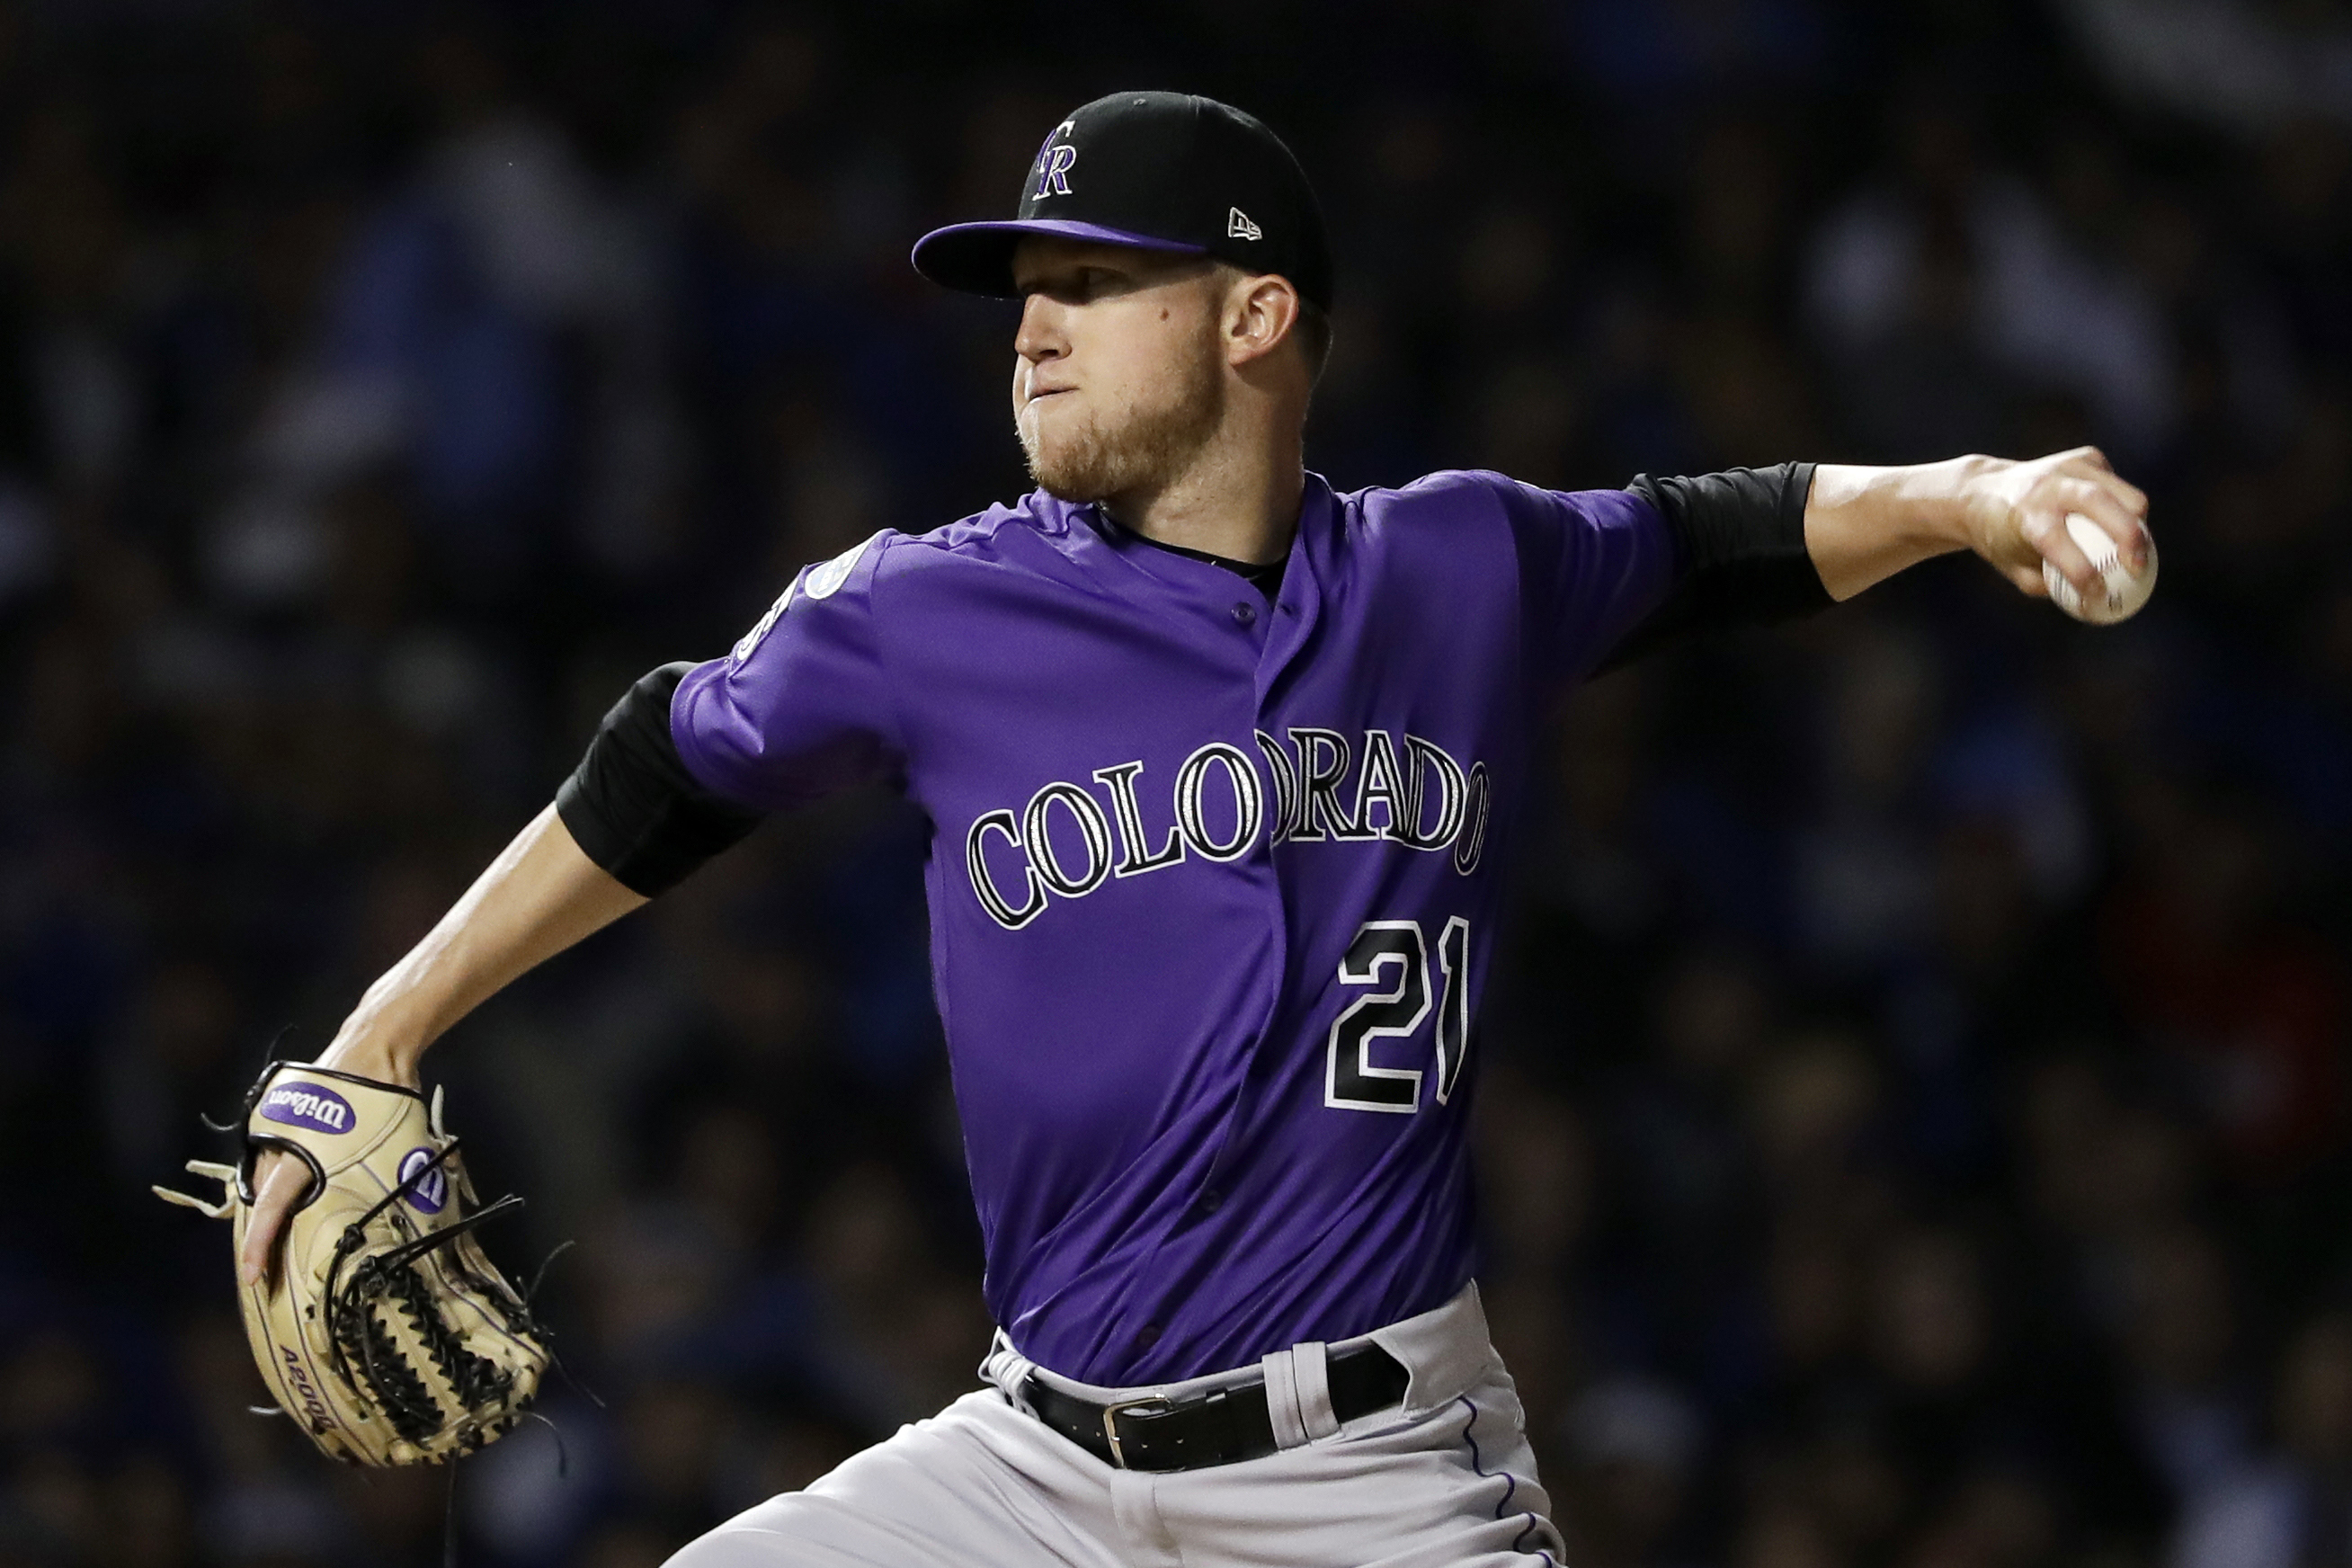 Photo: Rockies Pitcher Kyle Freeland Against Cubs